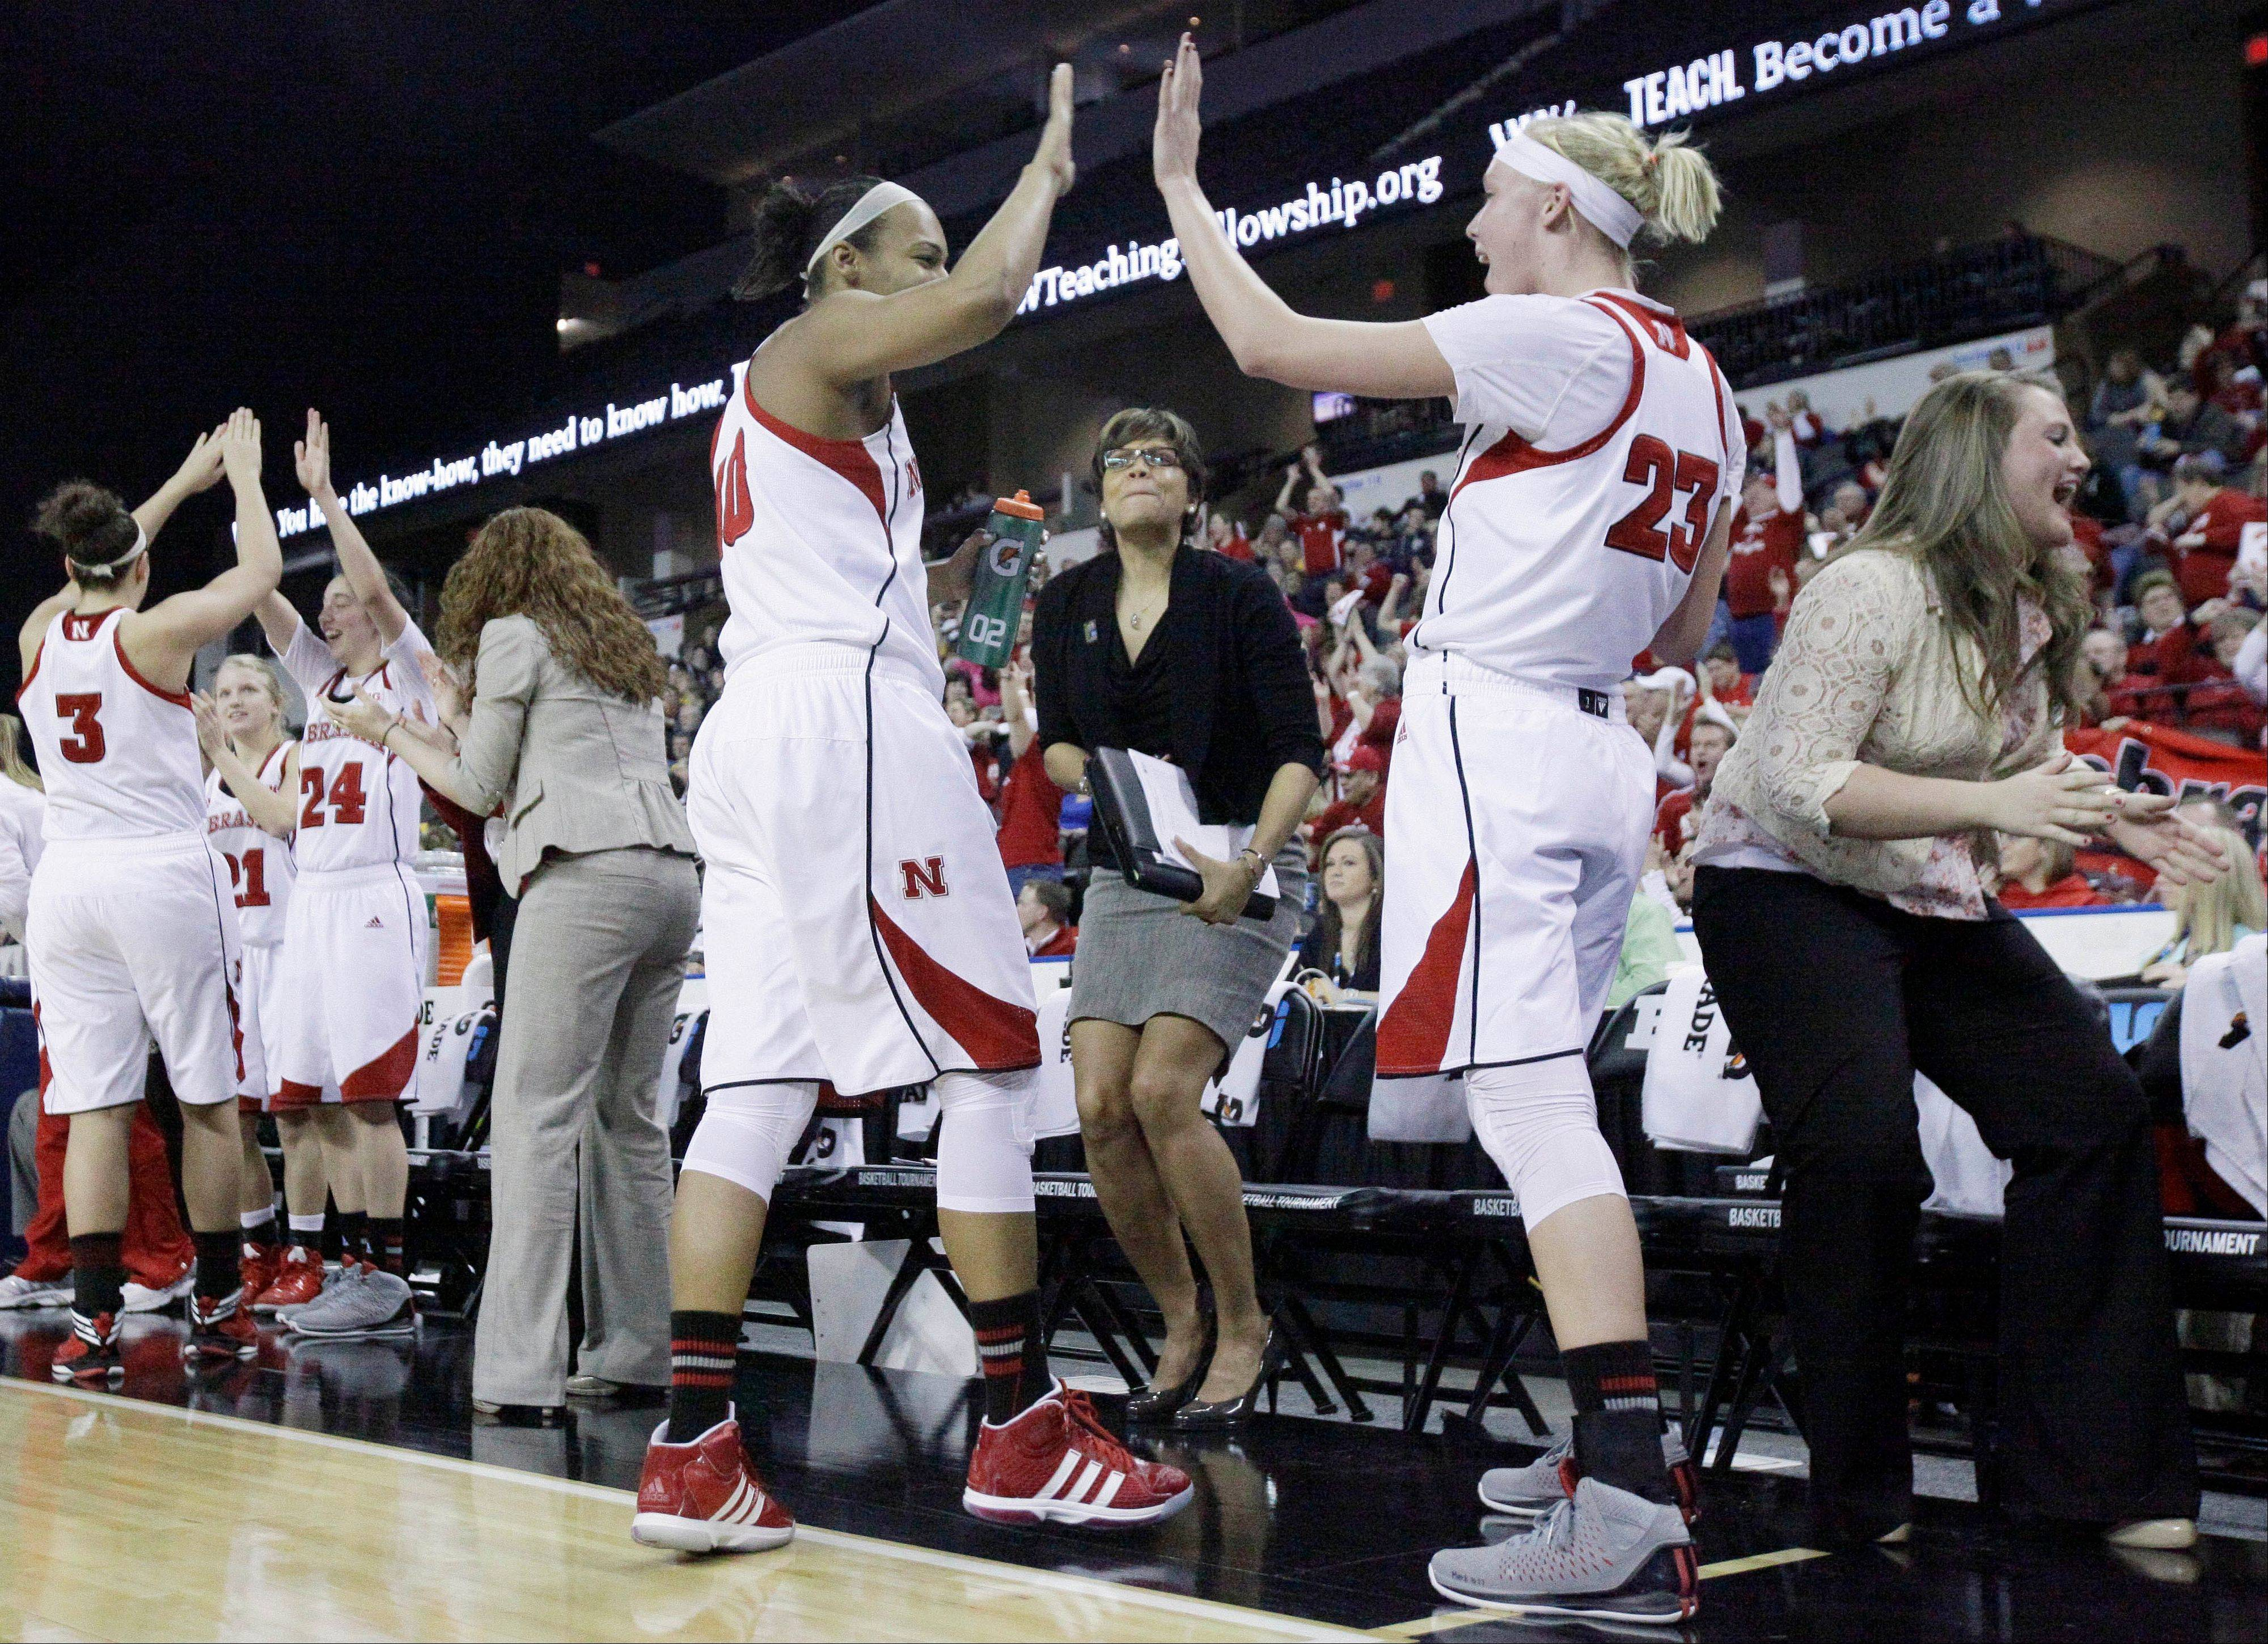 Nebraska players and staff celebrate after guard Brandi Jeffery, not pictured, scored during the second half of an NCAA college basketball game against Iowa in the Big Ten Conference tournament in Hoffman Estates, Ill., on Friday, March 8, 2013. Nebraska won 76-61.